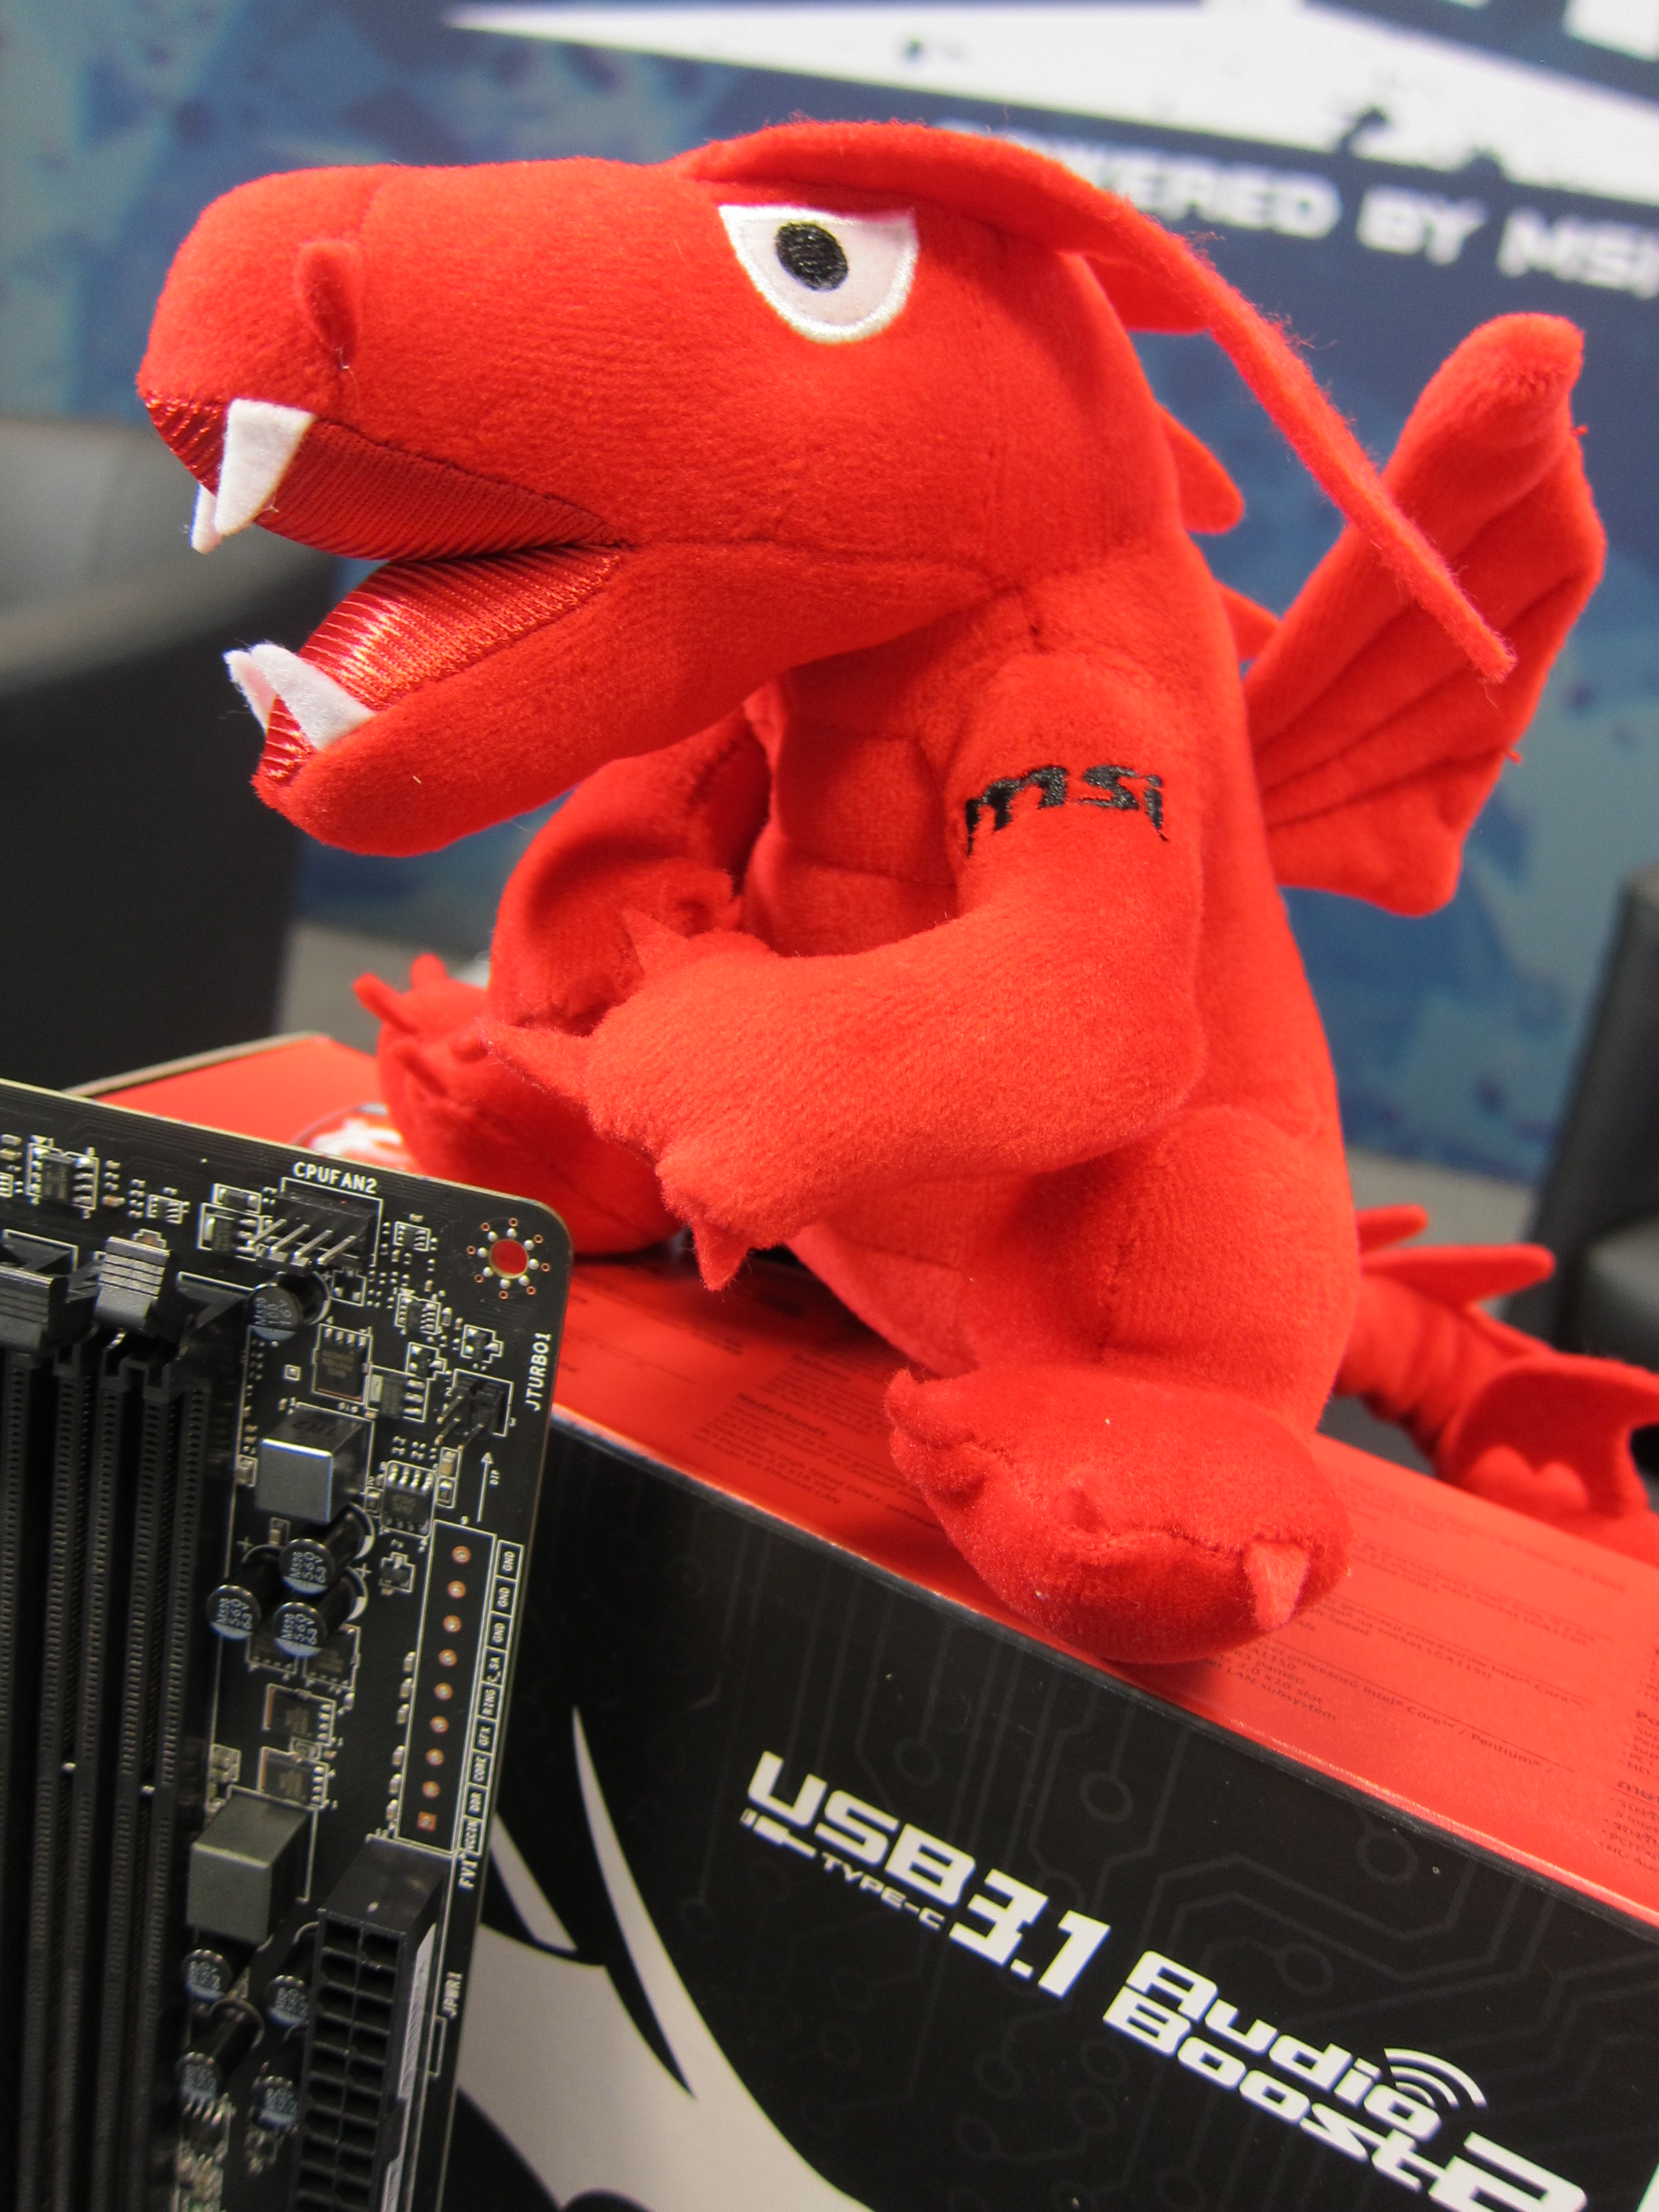 MSI Dragon Mascot